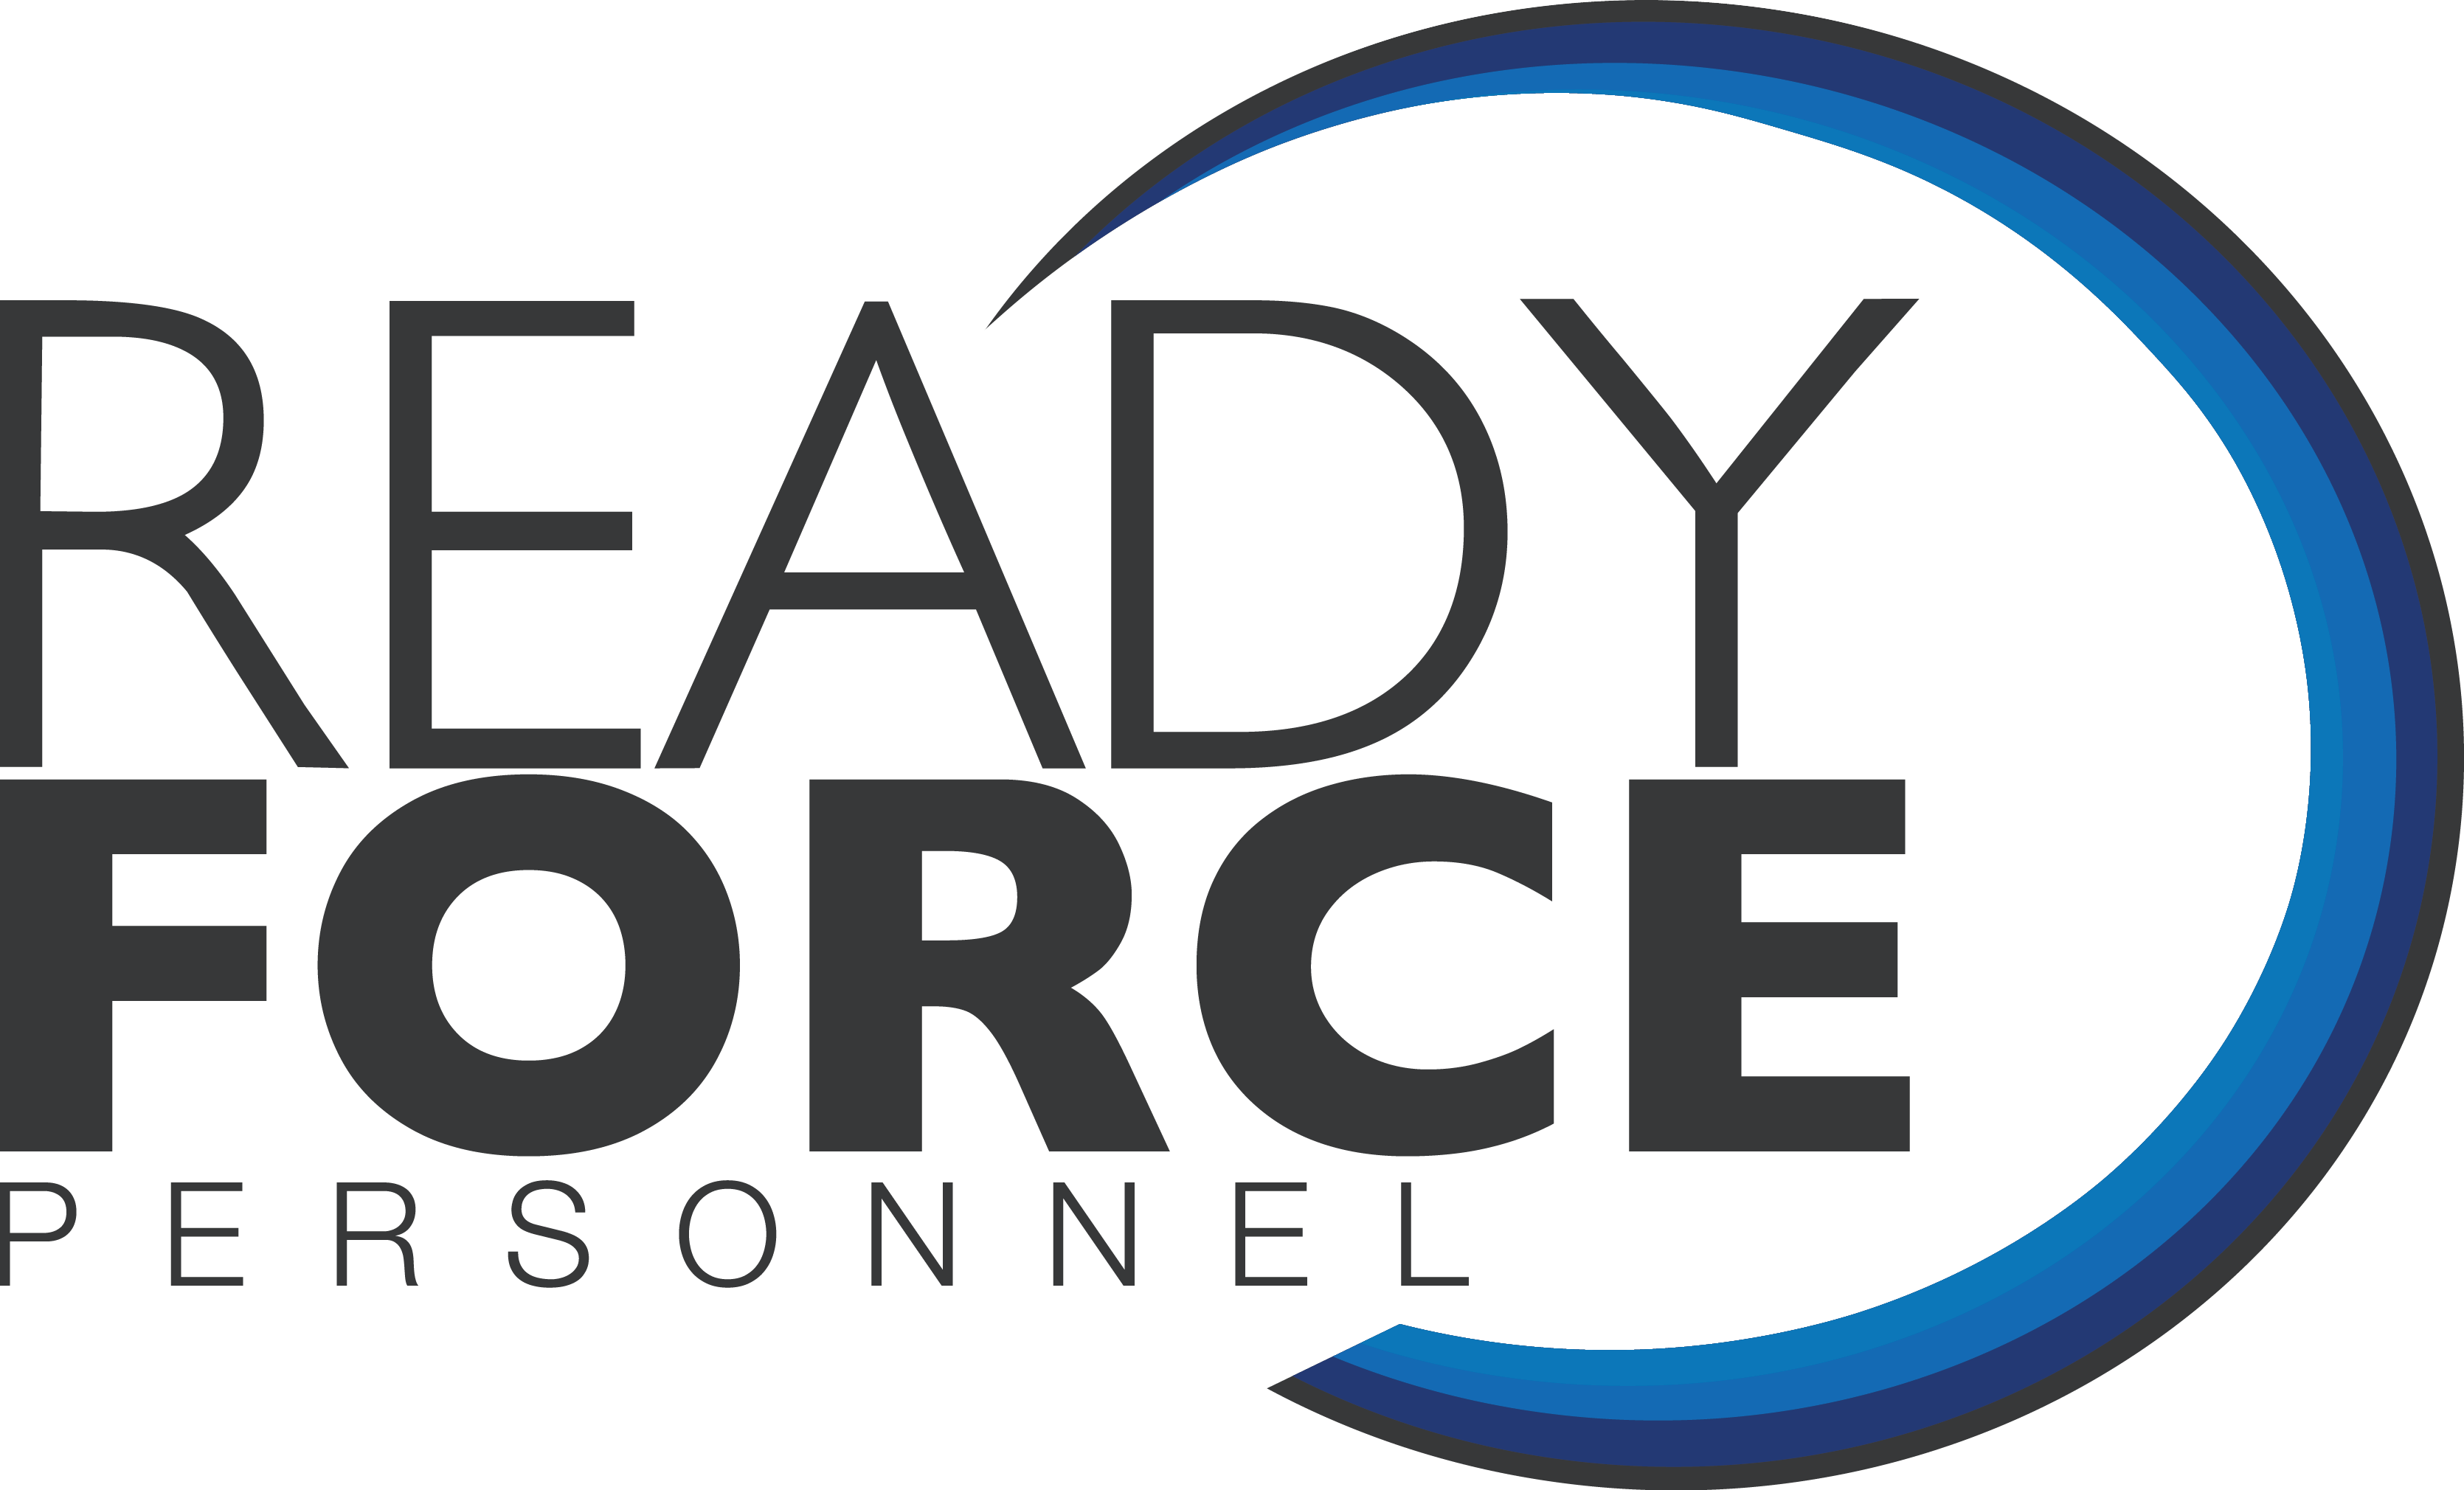 Read Force Personnel